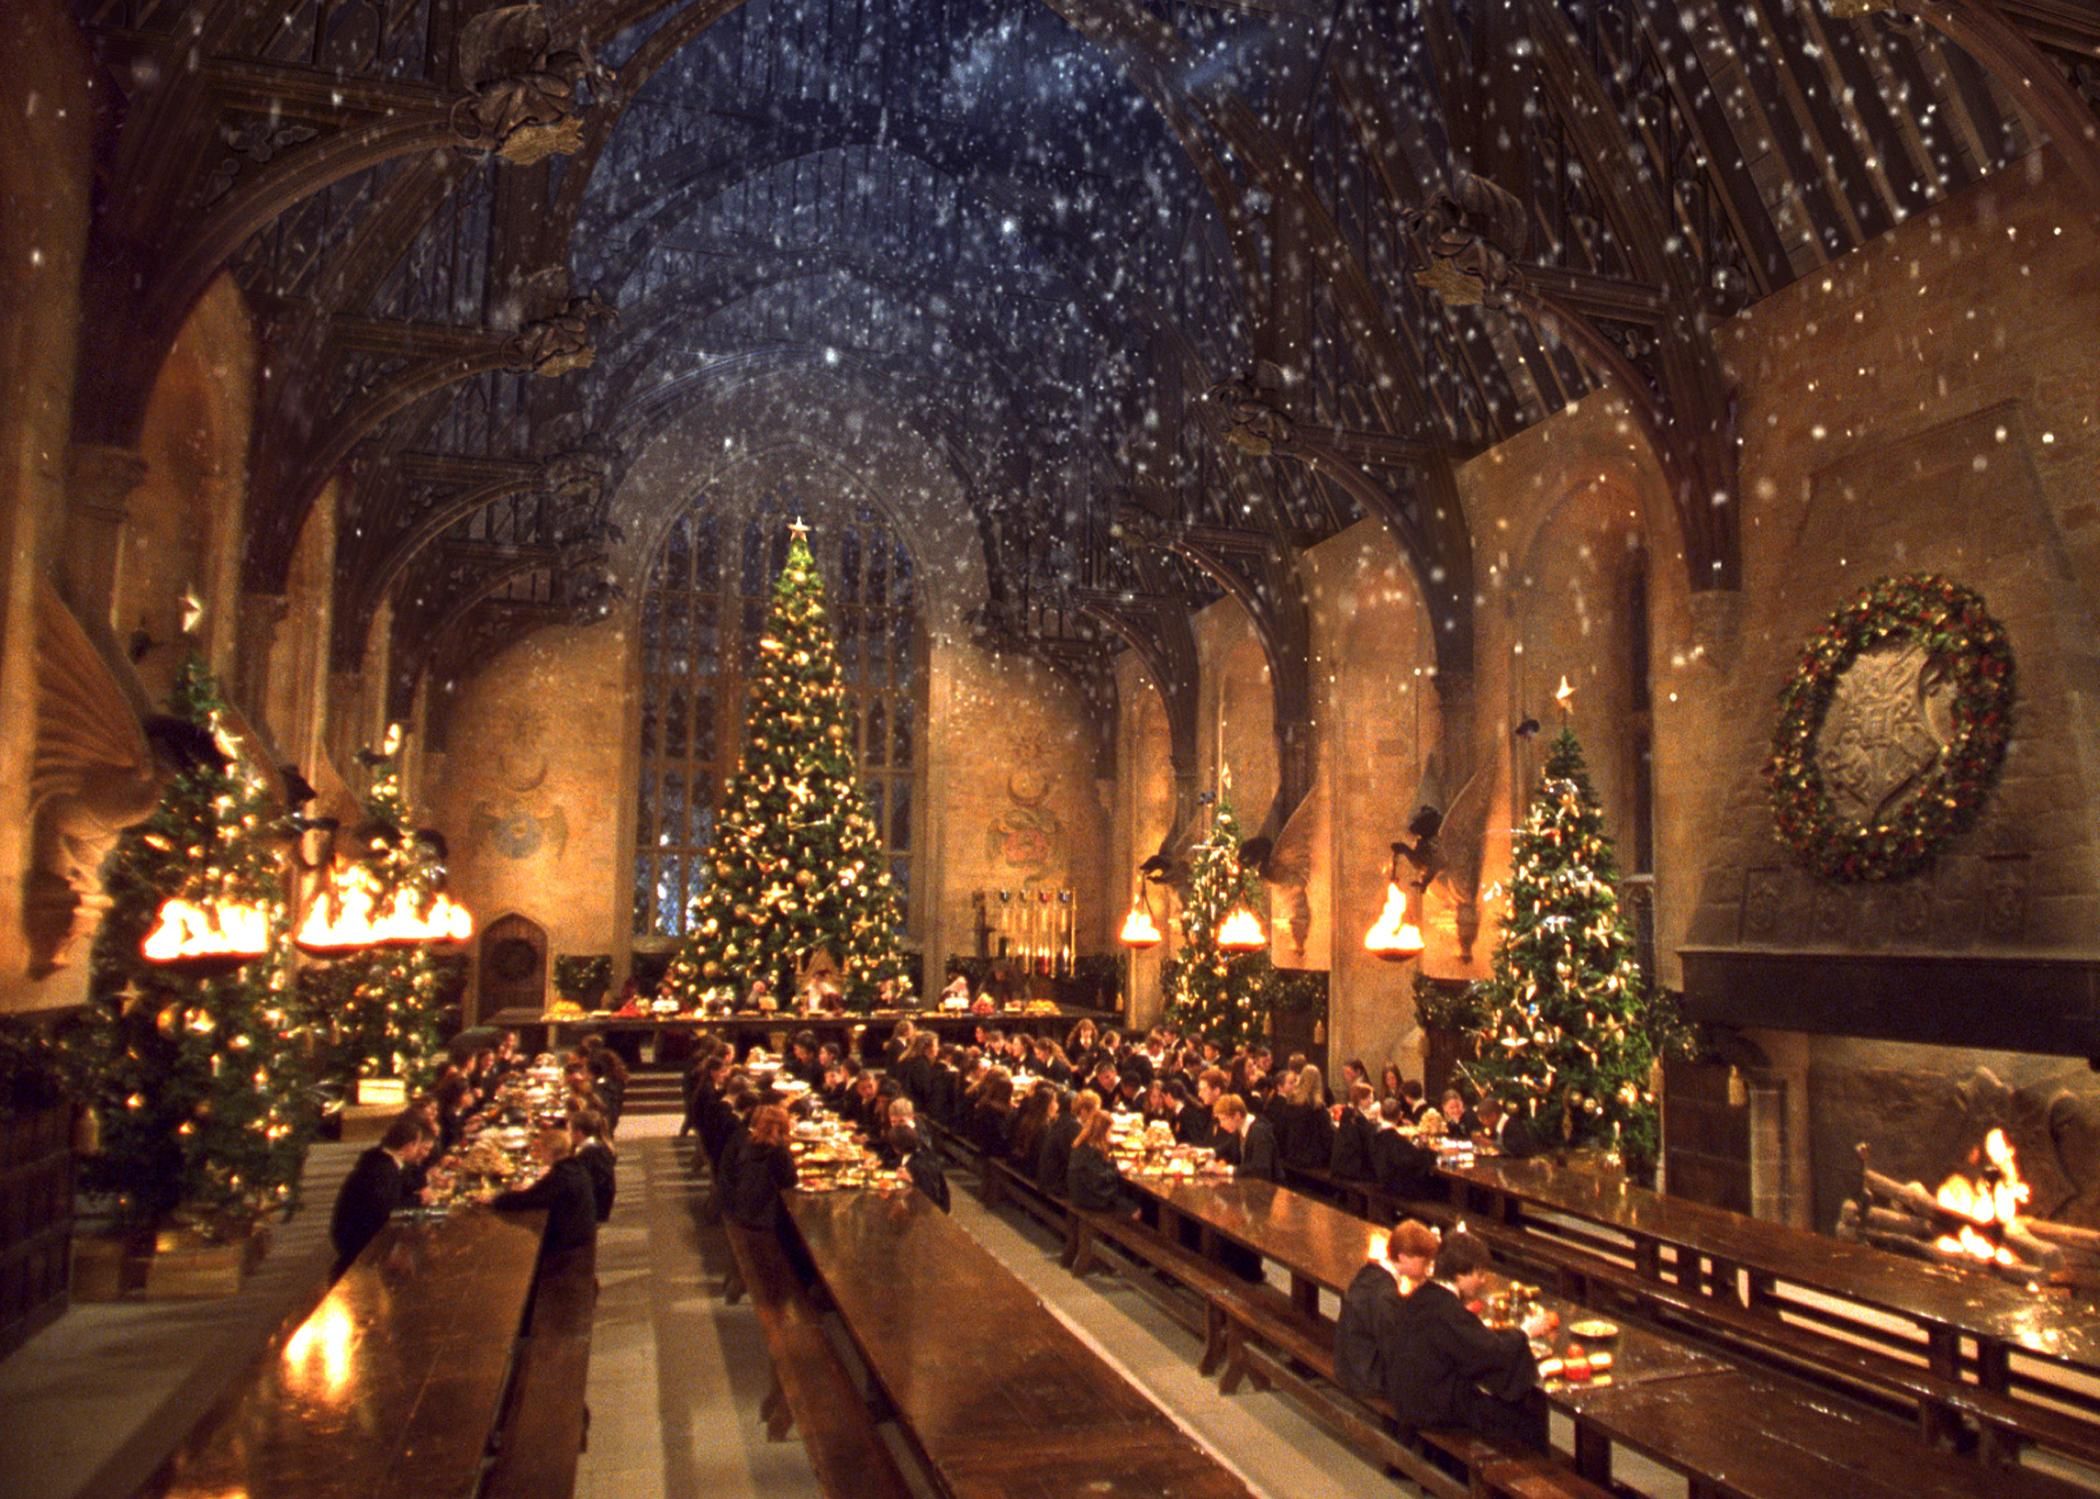 Christmas Dinner In The Great Hall 2020 Hogwarts Dinner Harry Potter Studio Tour | Time